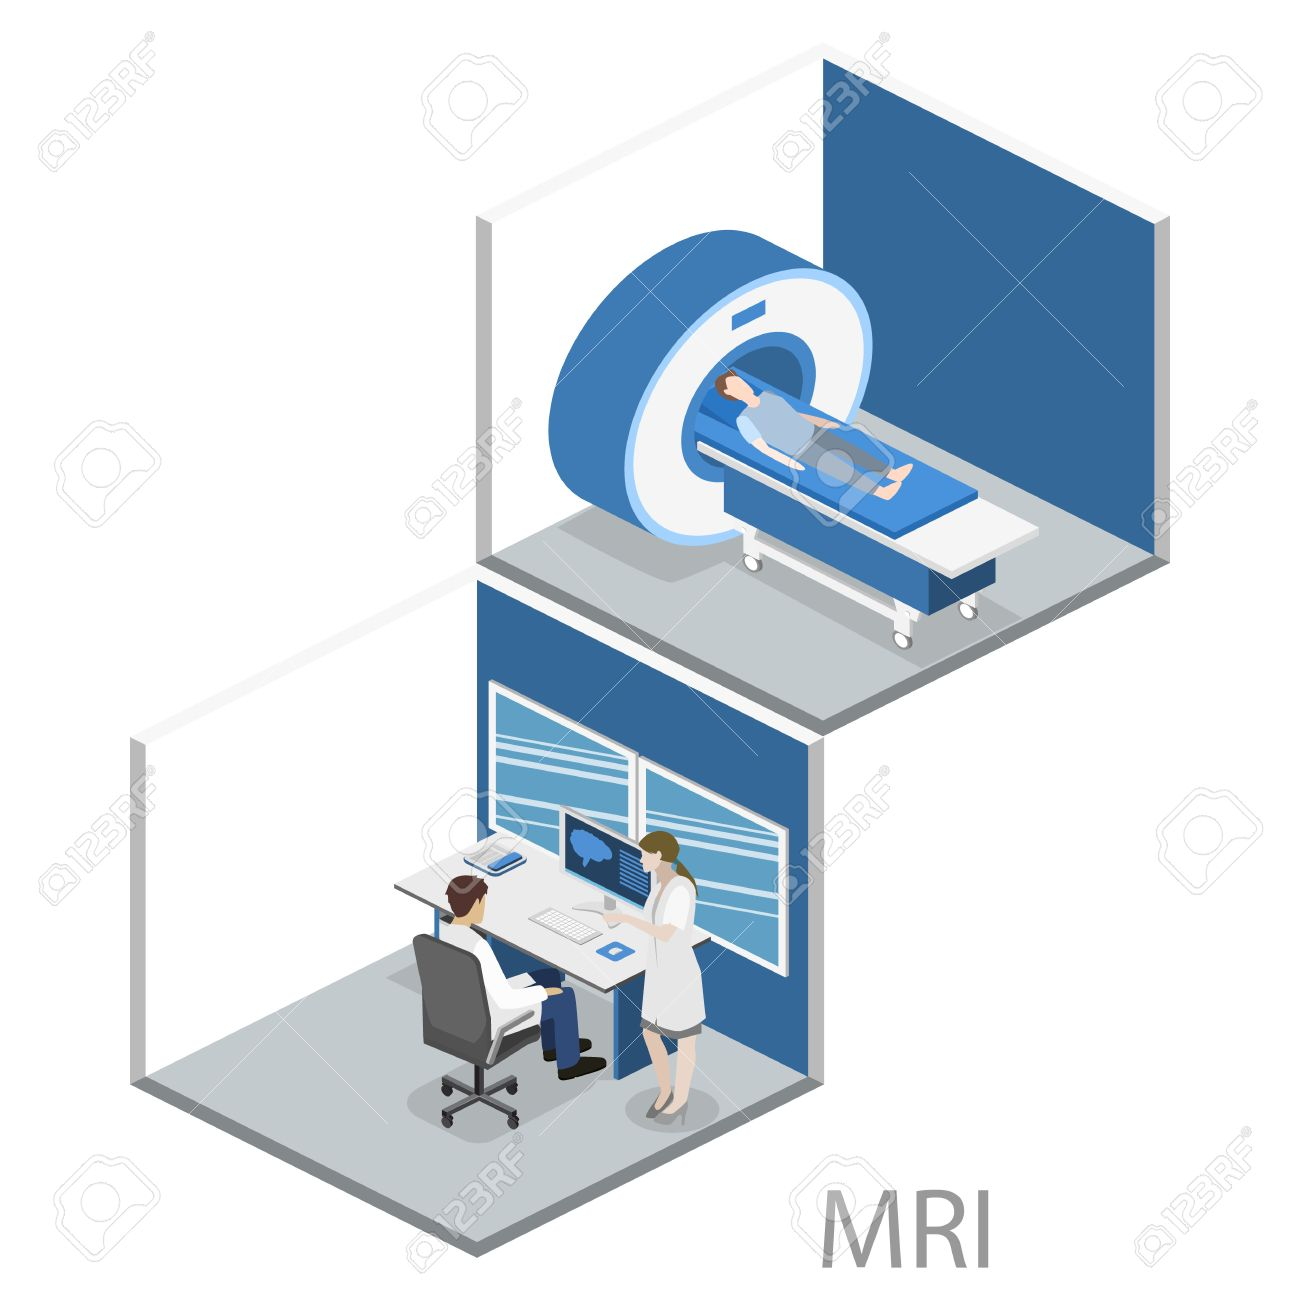 hight resolution of isometric flat 3d concept vector hospital medical mri web illustration nuclear magnetic resonance imaging tomography